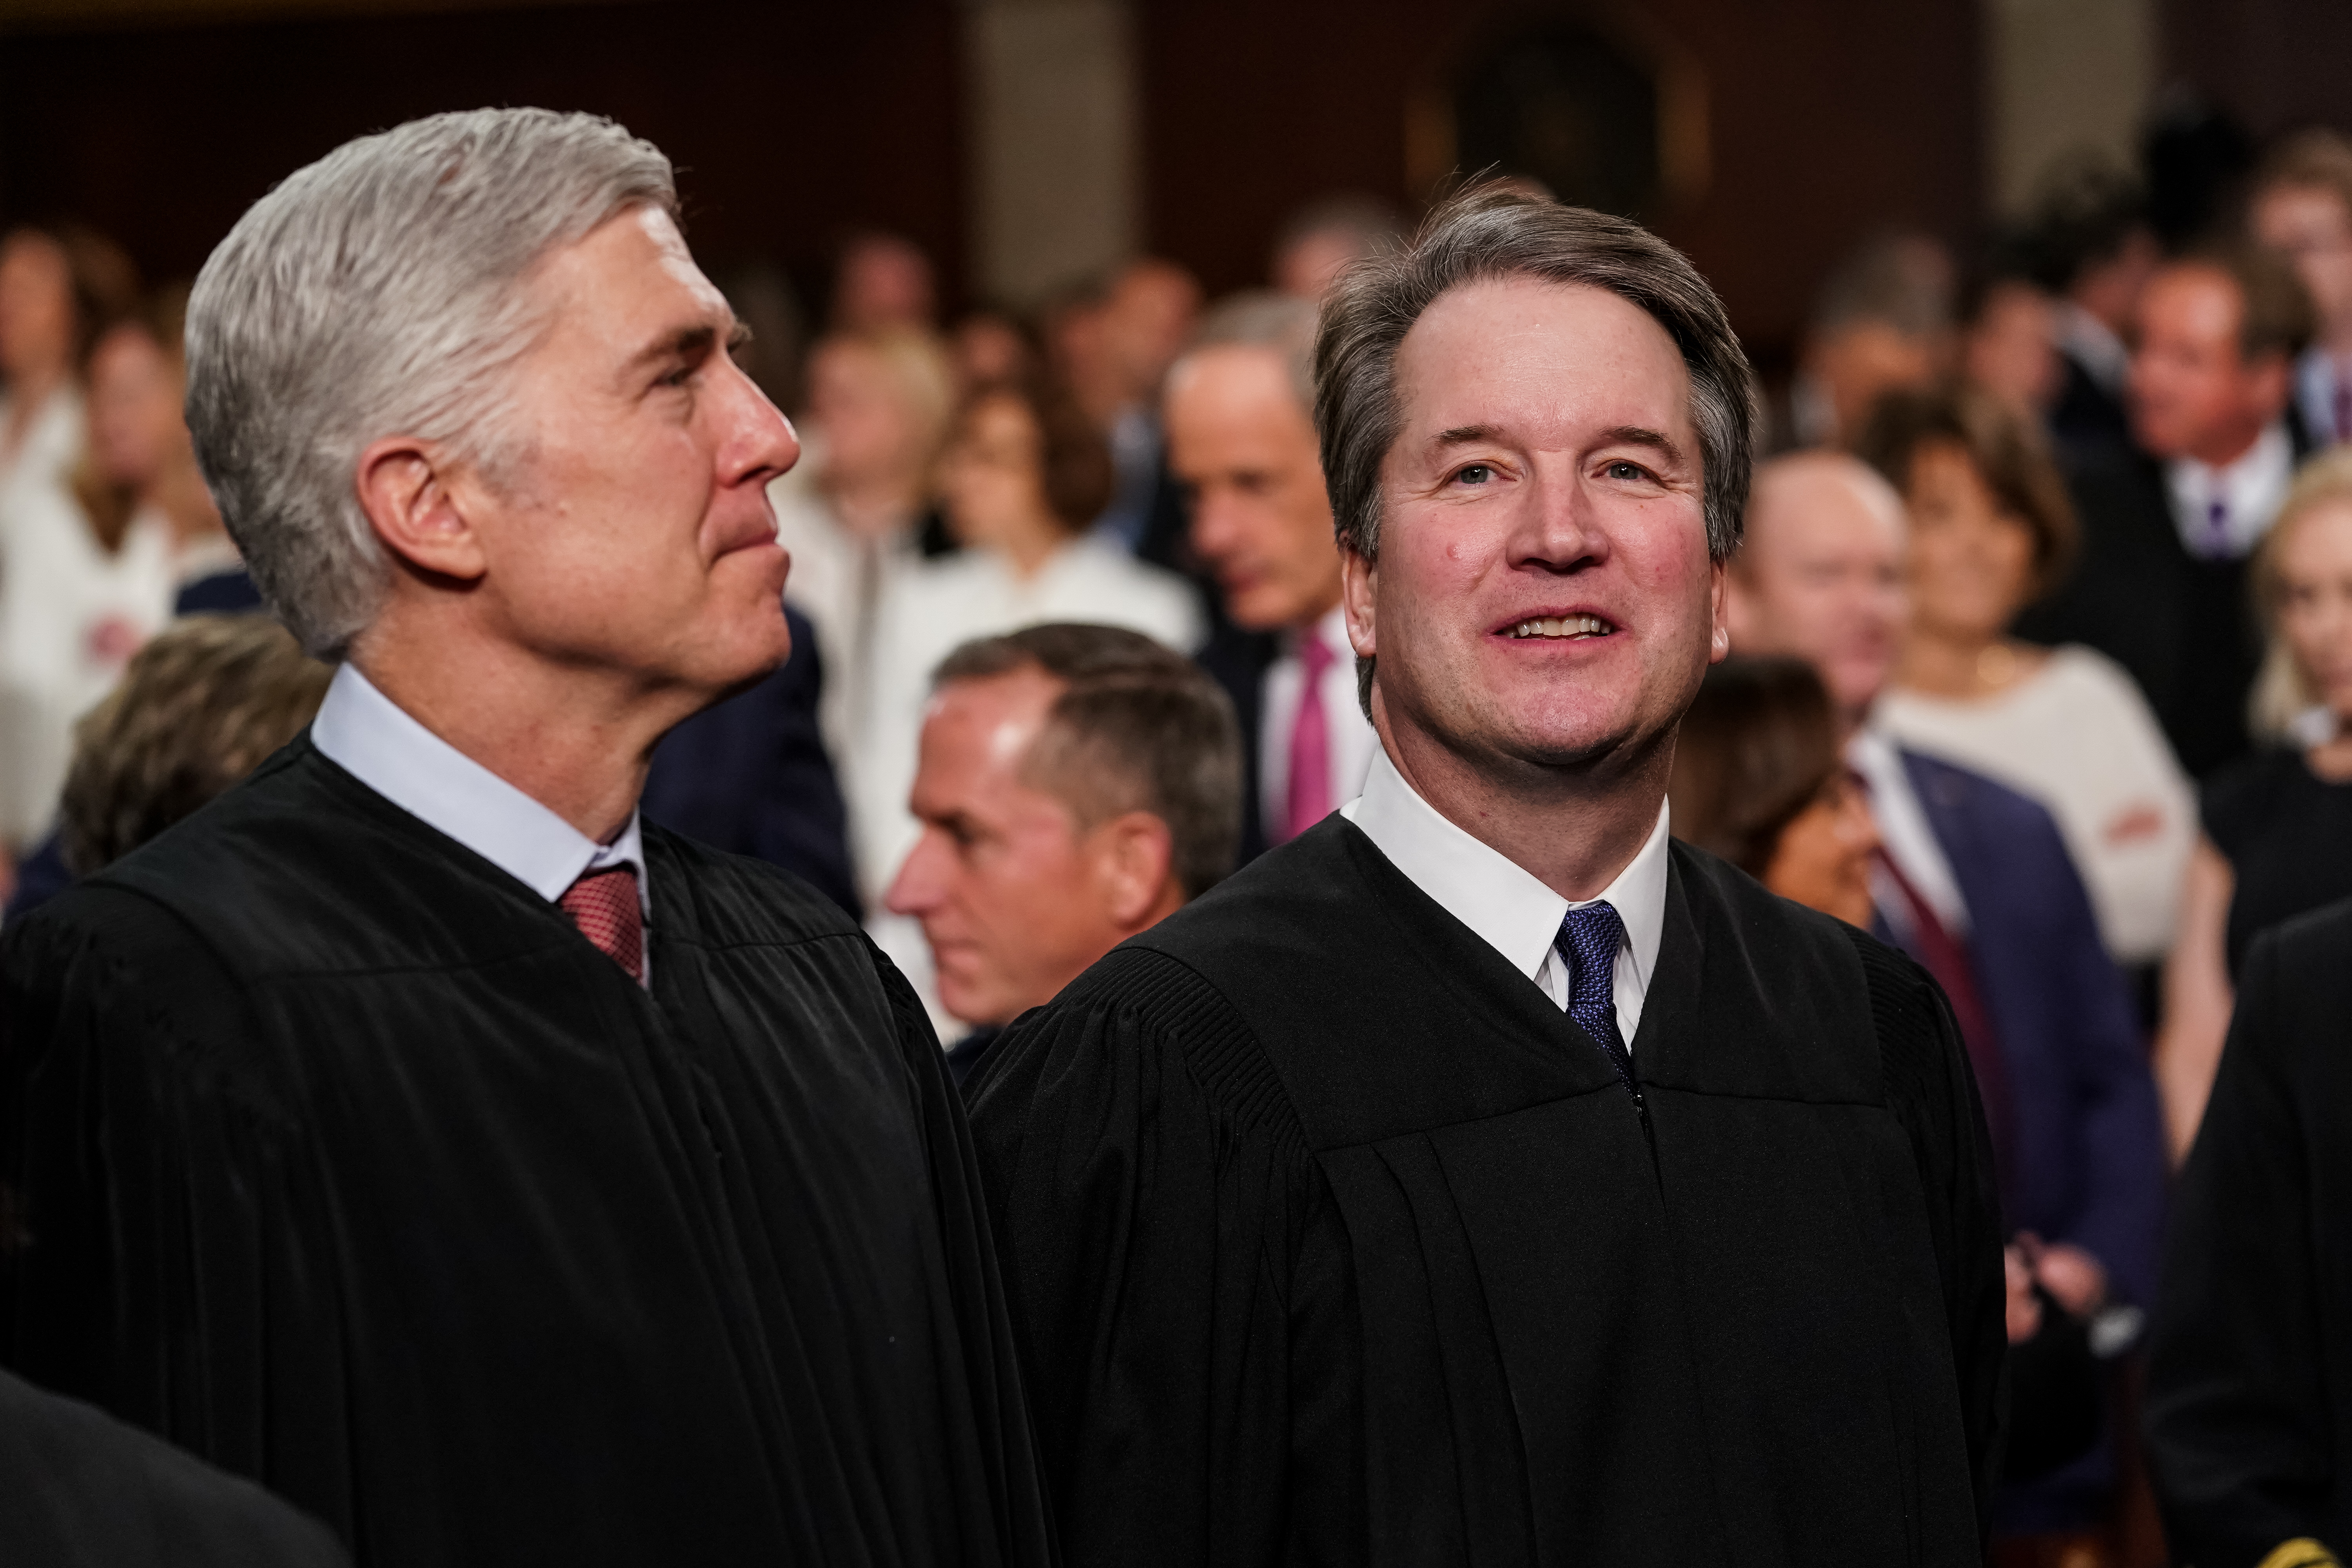 FEBRUARY 5, 2019 - WASHINGTON, DC: Supreme Court  Neil Gorsuch, left, and Brett Kavanaugh at the Capitol in Washington, DC on February 5, 2019. (Doug Mills/The New York Times POOL PHOTO) NYTSOTU